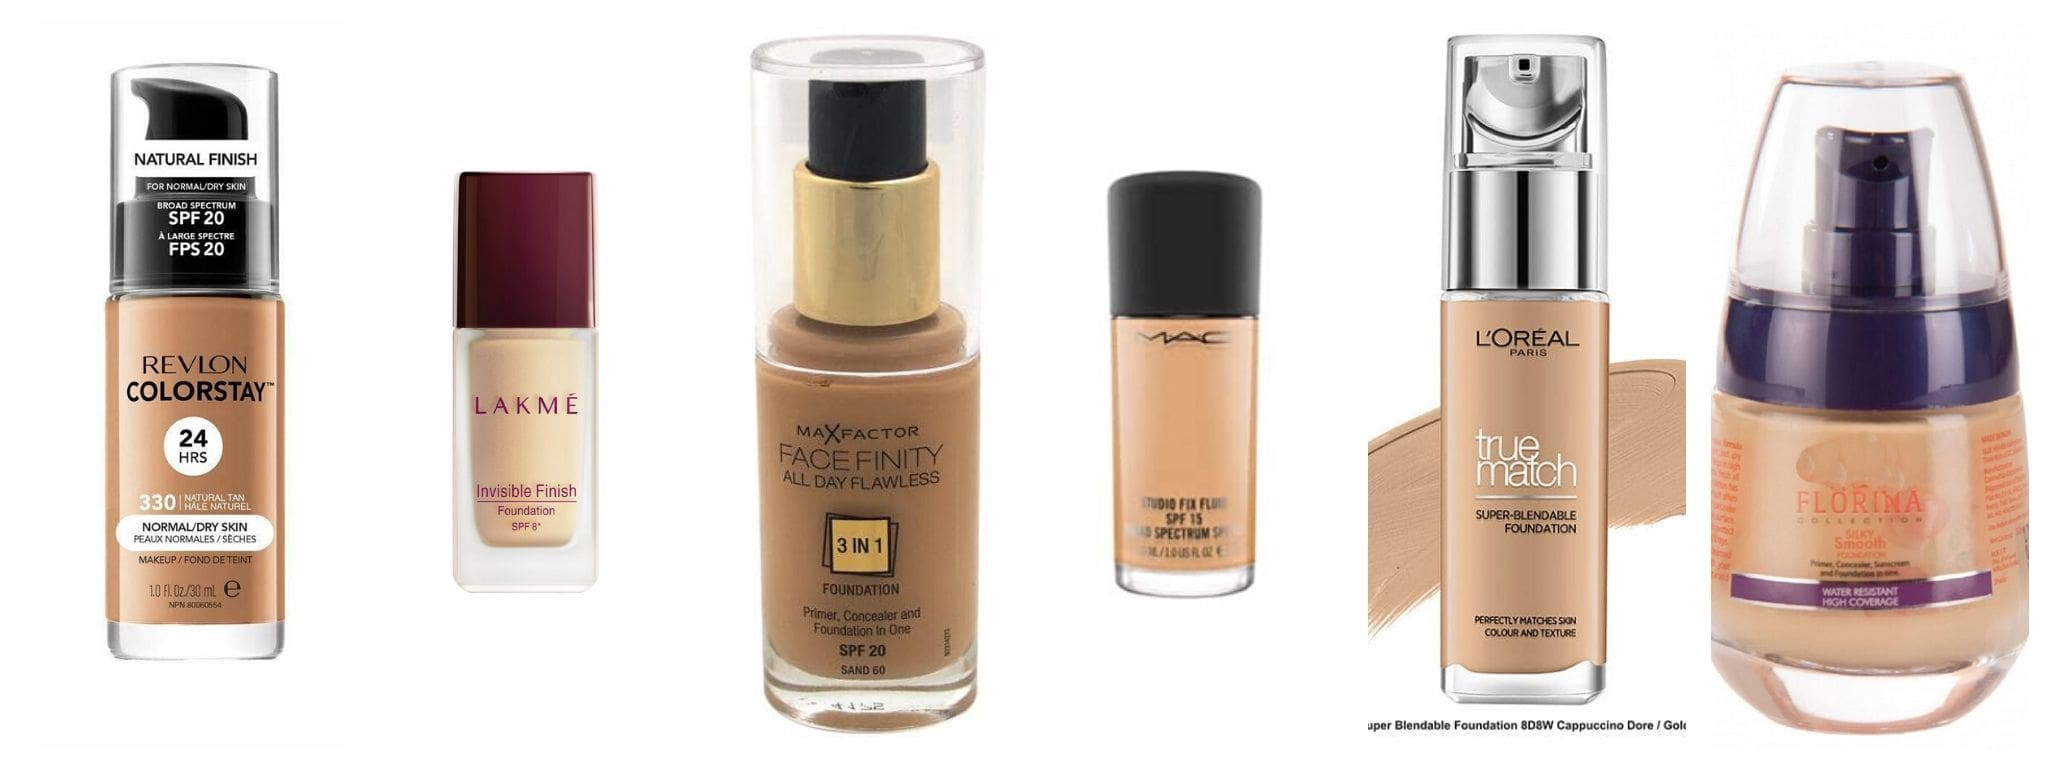 Top 8 Best Foundation July 2020 For All Skin Types By Best Review For You Medium